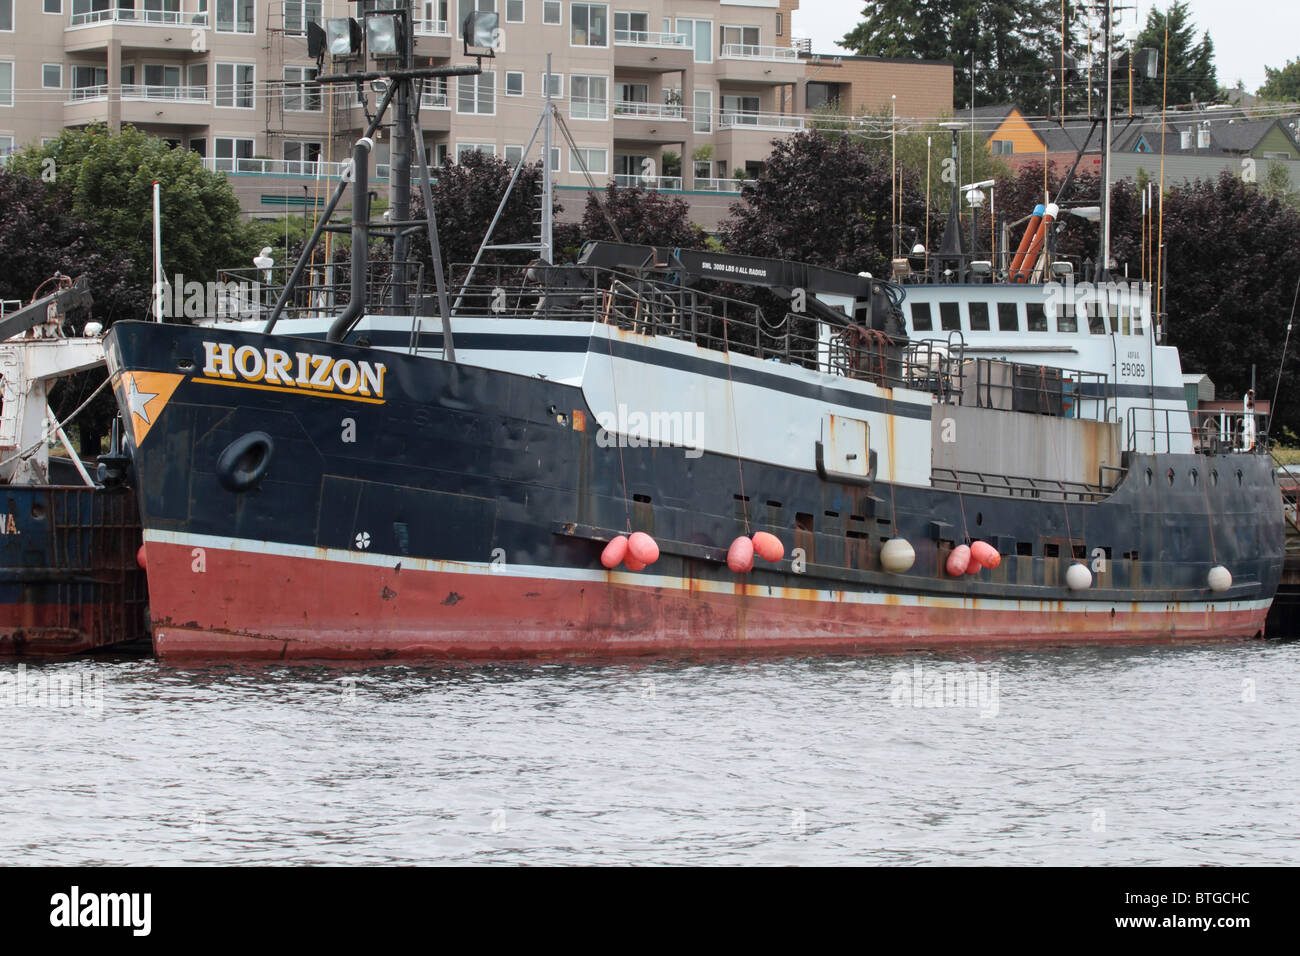 Fishing boat Horizon moored in the Ship canal between Lake Union and Lake Washington in Seattle - Stock Image